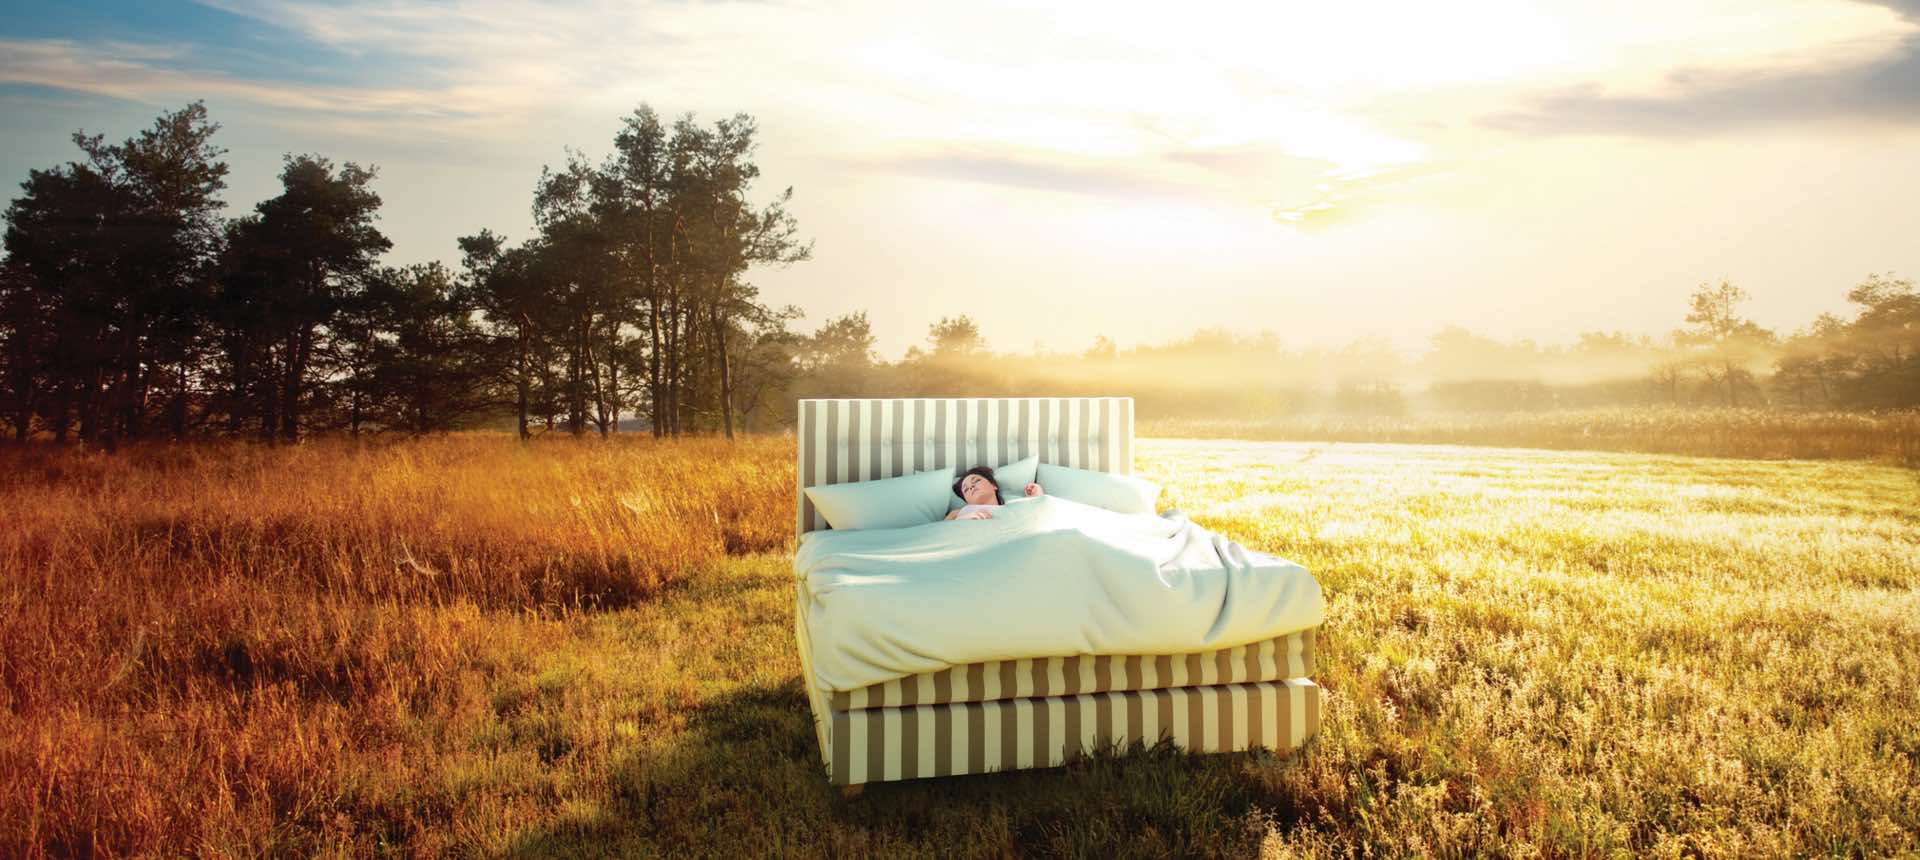 pauly-beds-continental-luxury-mattress-in-nature